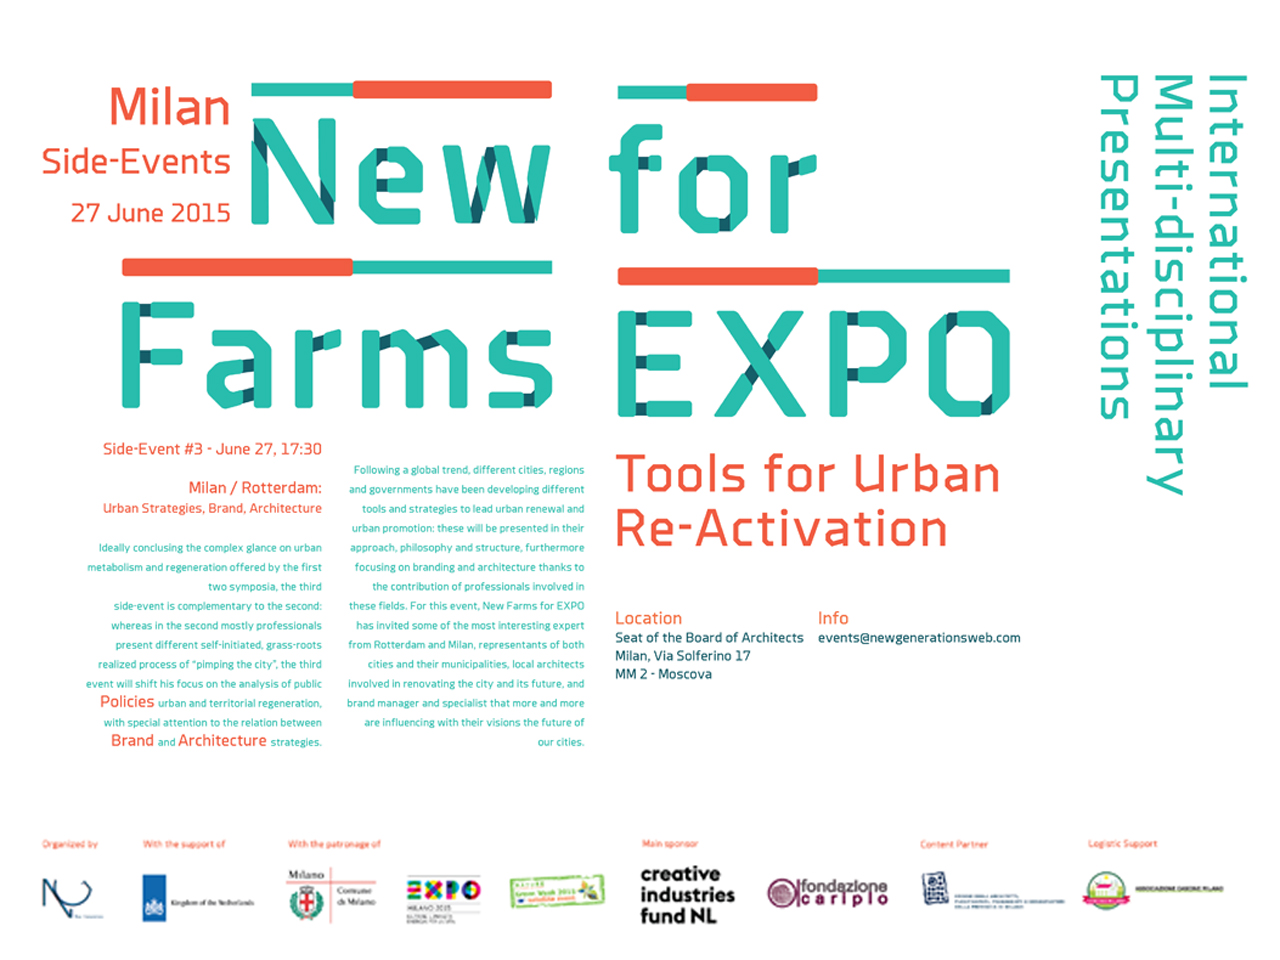 Jeroen Zuidgeest to give Workshop in Milan on 'Tools for Urban Reactivation' on June 27th